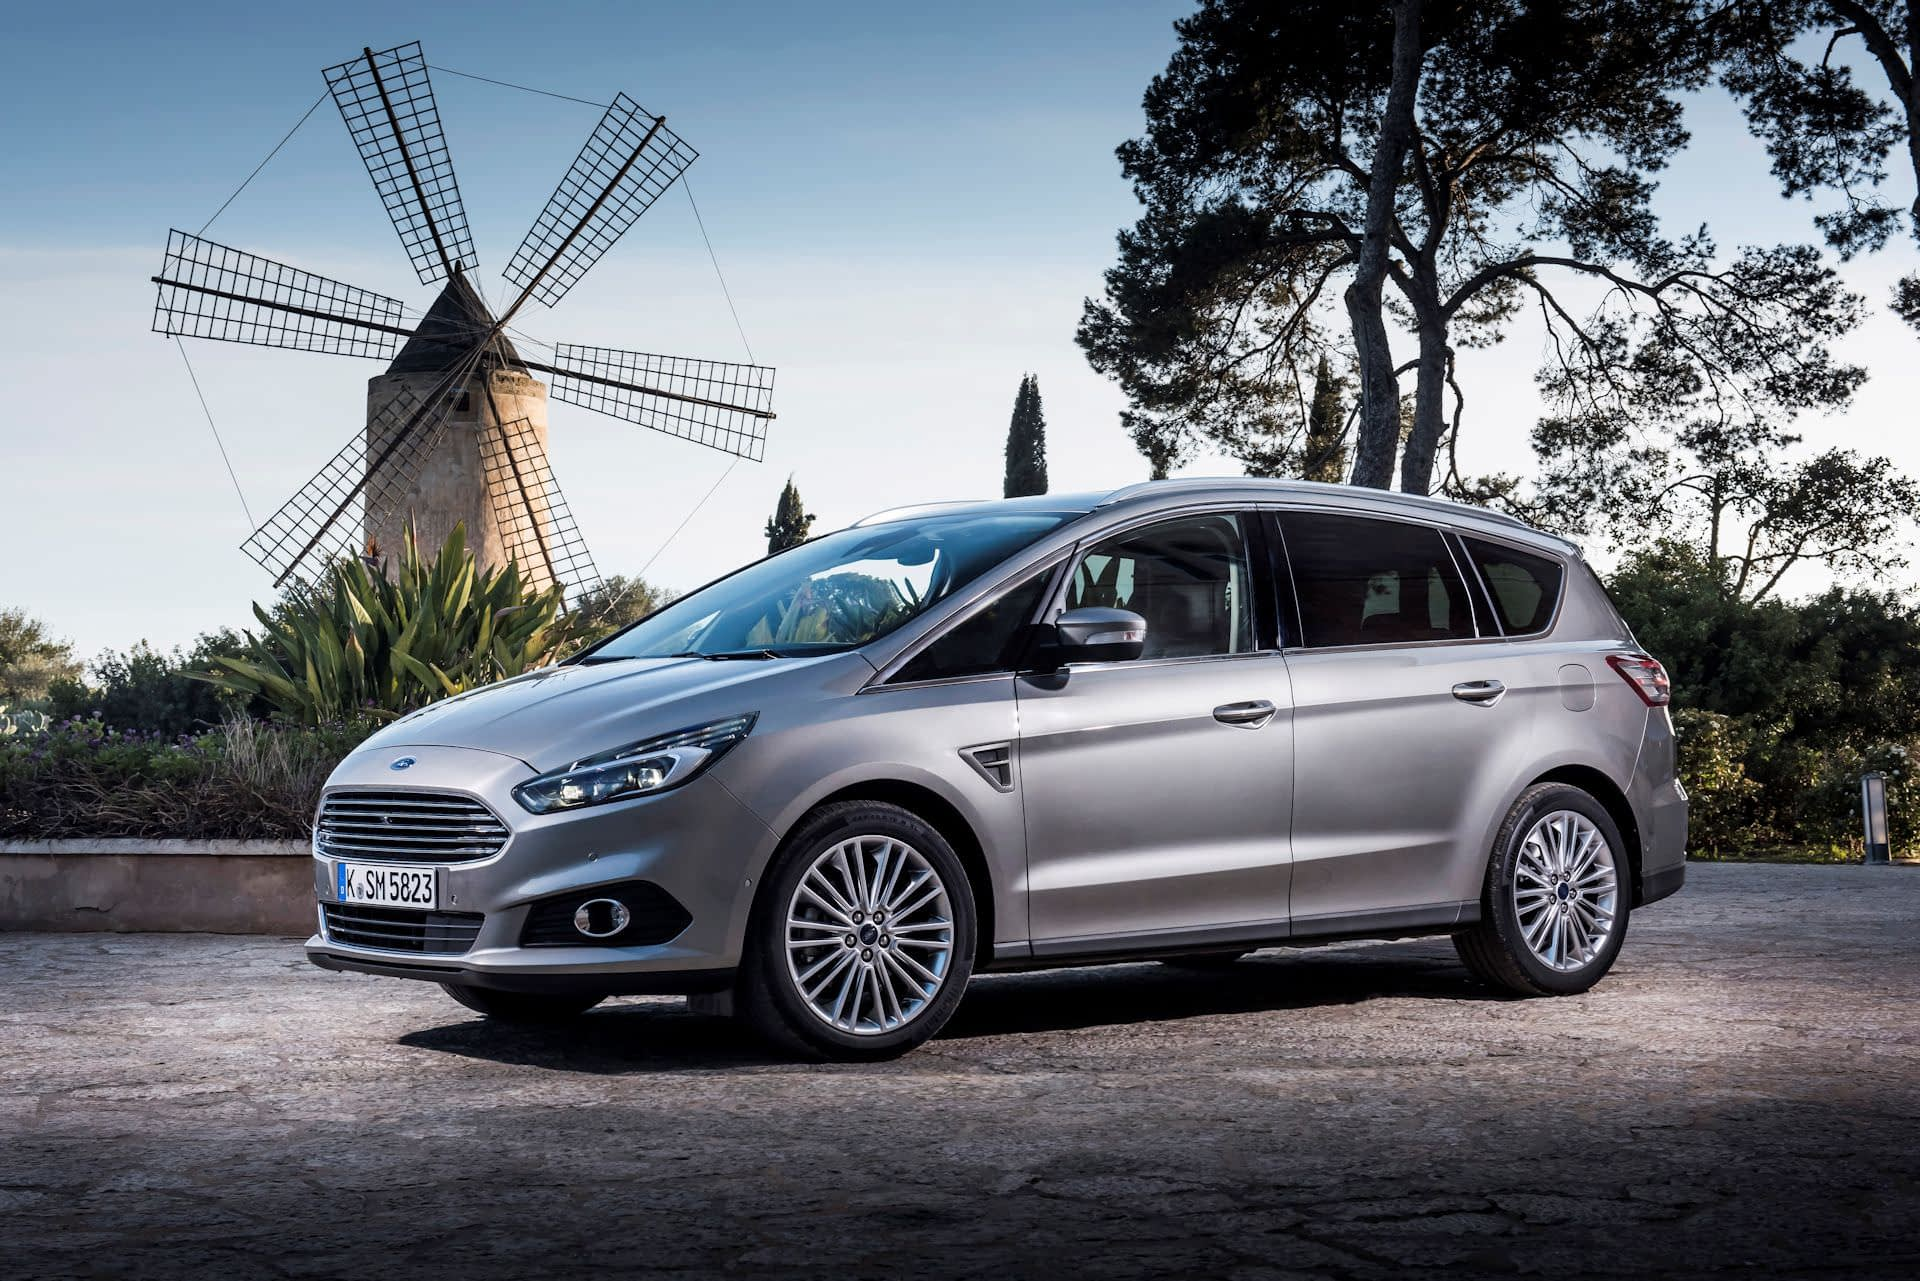 Ford S-Max Static 03